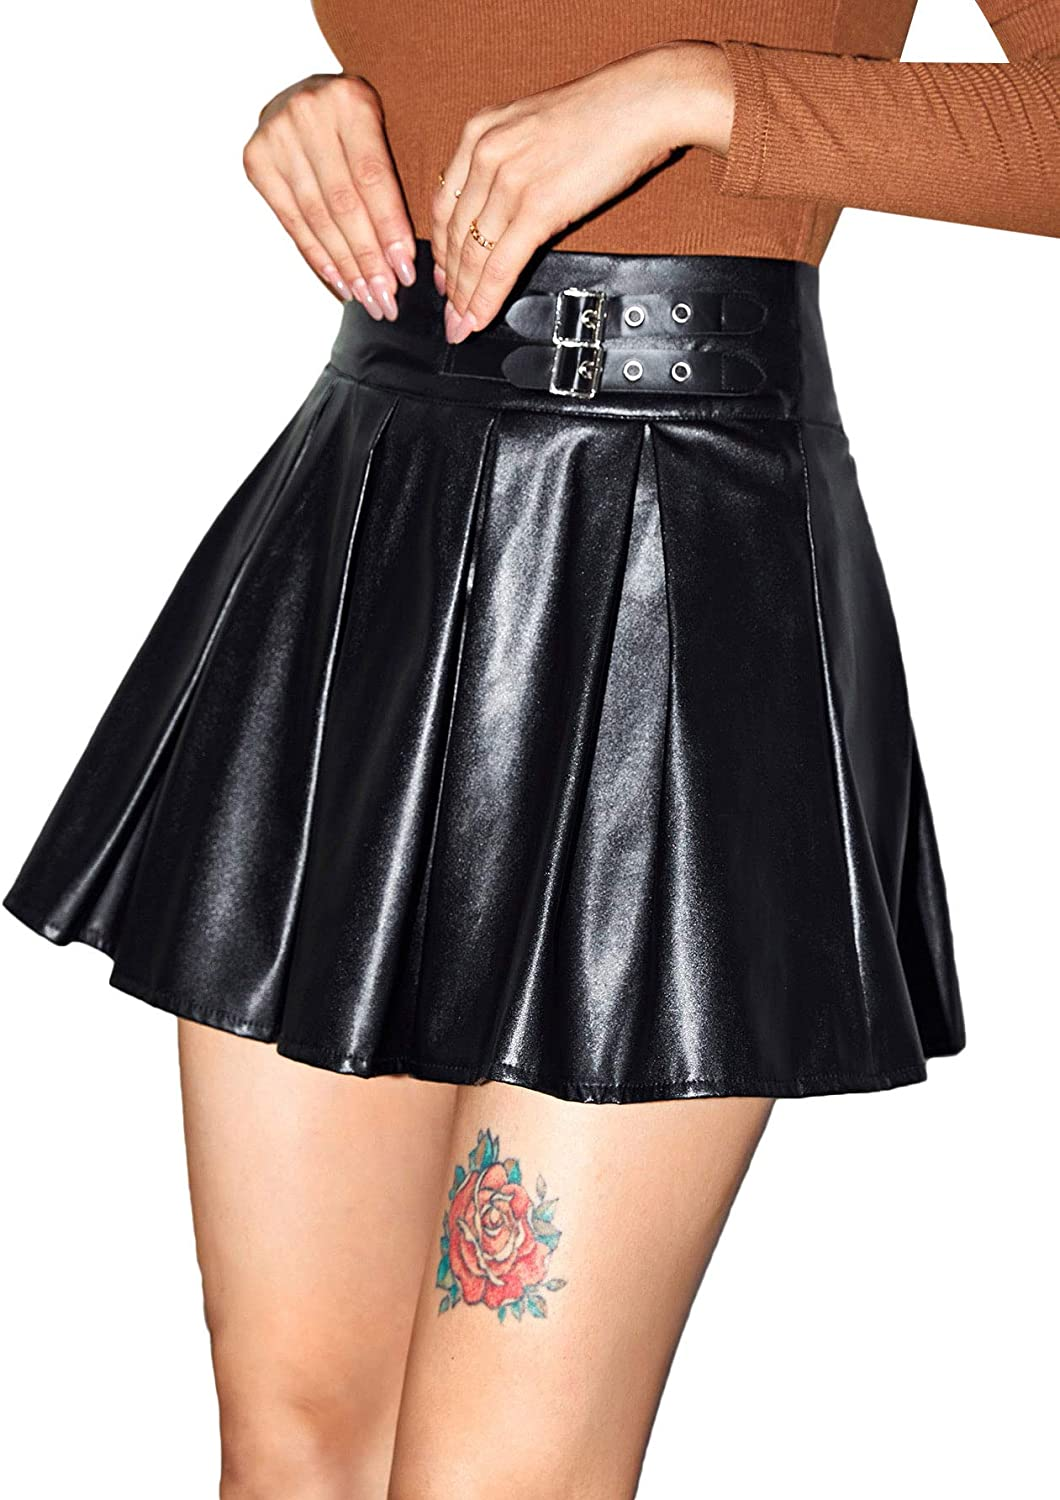 Floerns Women's Casual Pleated PU Leather A Line High Waist Belted Mini Skirt